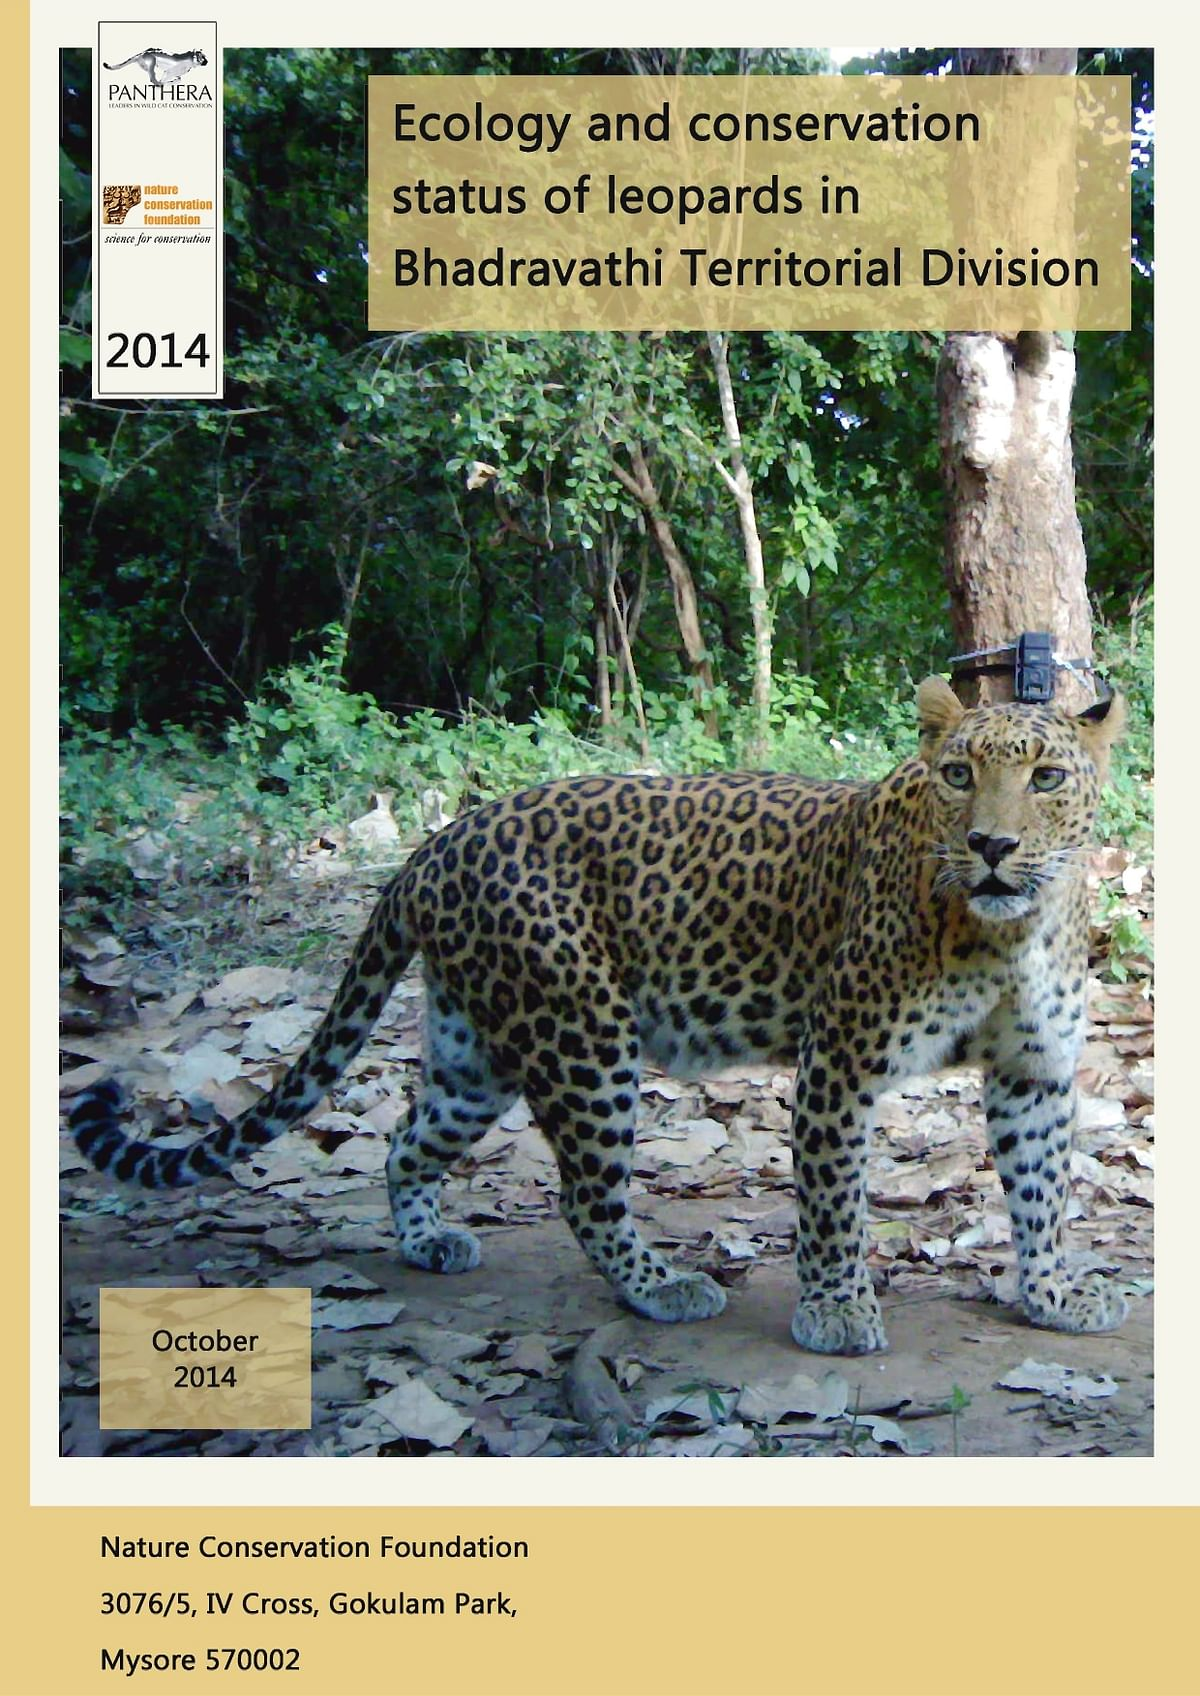 Ecology and conservation status of leopards in Bhadravathi Territorial Division